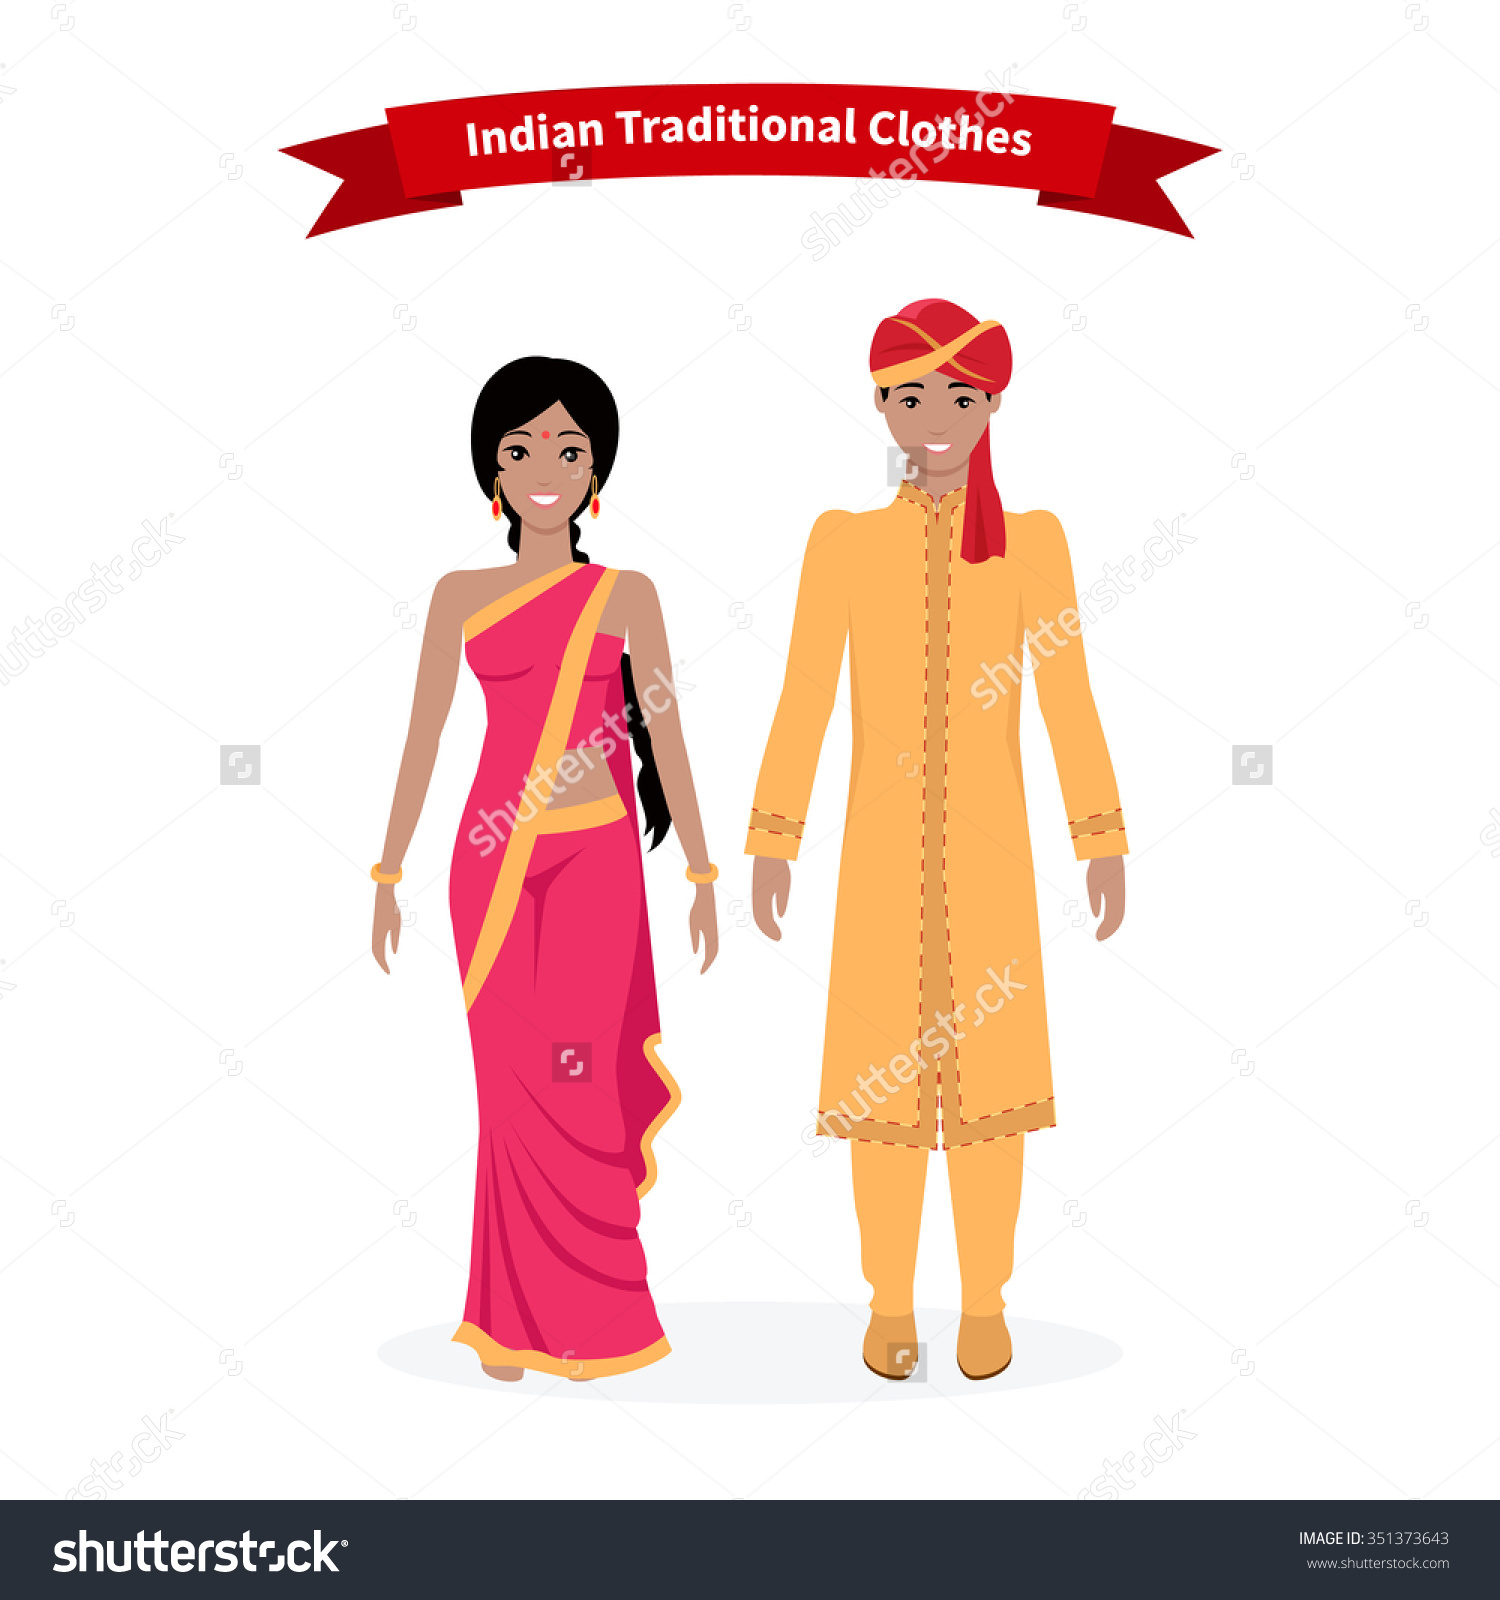 Bengali traditional dress clipart jpg royalty free stock Indian Traditional Clothes People Indian Sari Stock Vector ... jpg royalty free stock